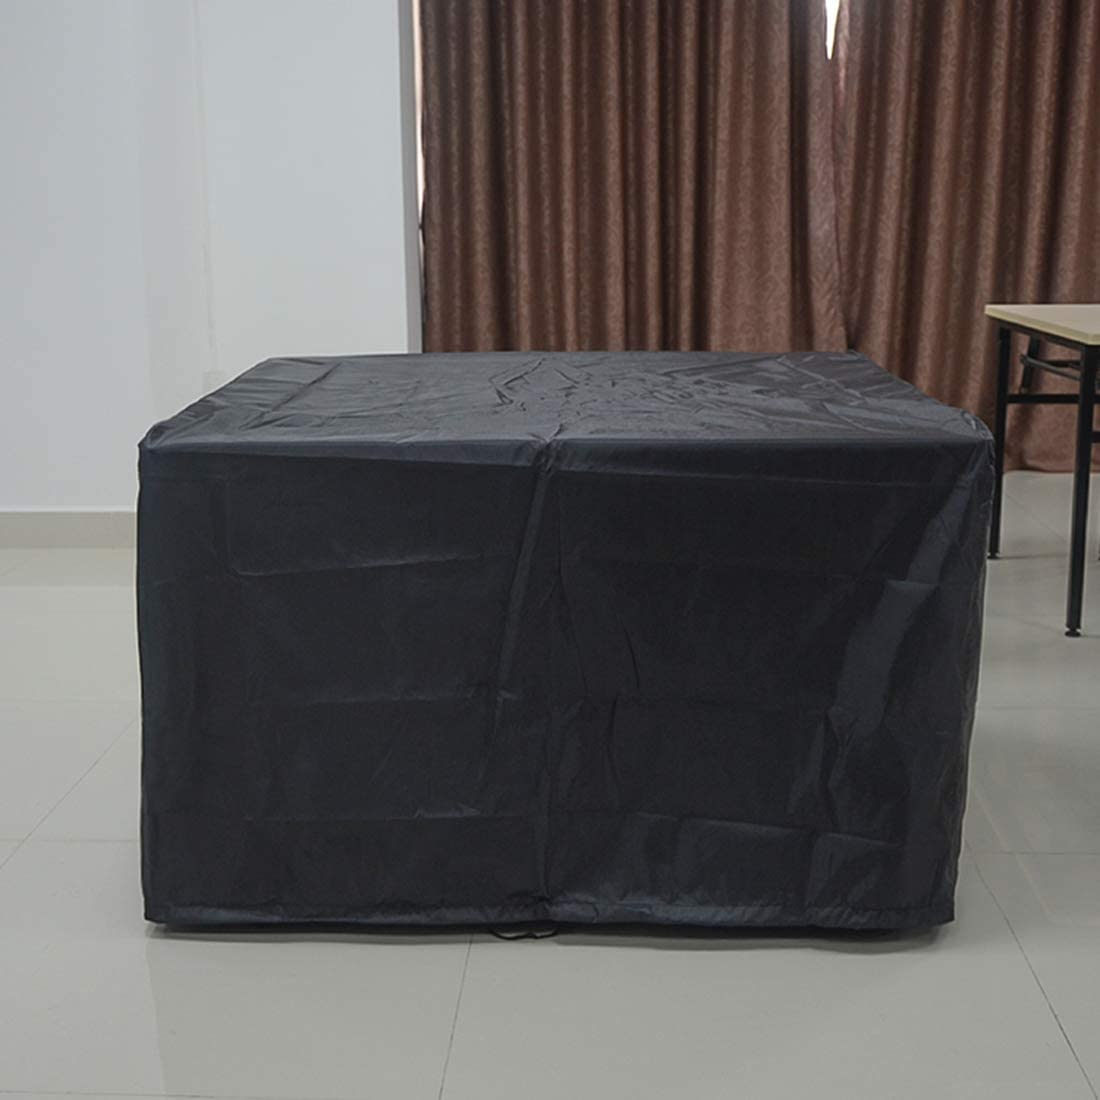 FLR 48in Patio Table Cover Square Black Waterproof Outdoor Dinner Protector Dust-proof Table Desk Cover Furniture Covers with Storage Bags for Garden Outdoor Indoor Furniture